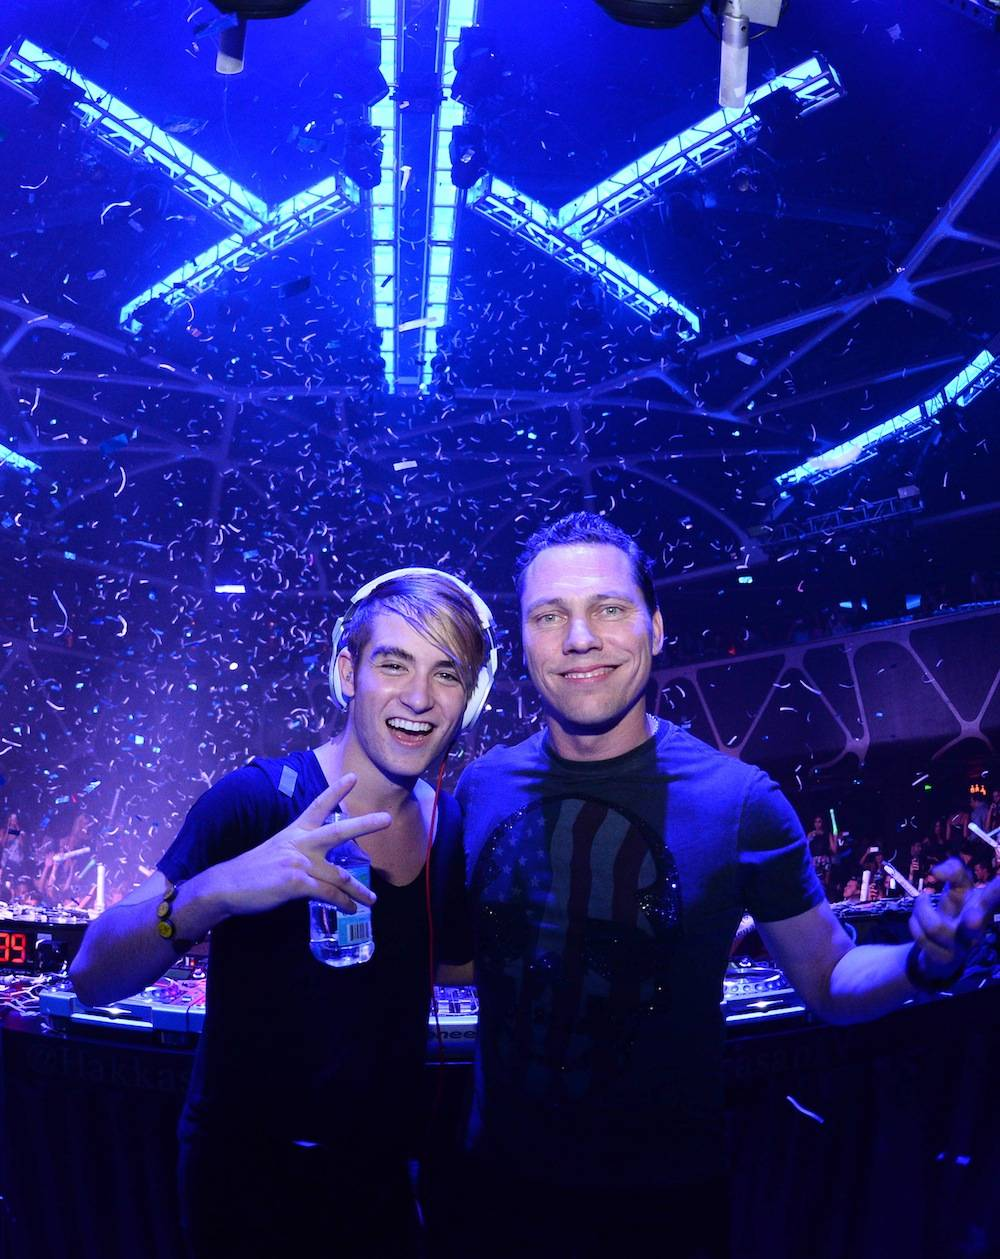 Danny Avila and Tiesto. Photos: Al Powers/Powers Imagery